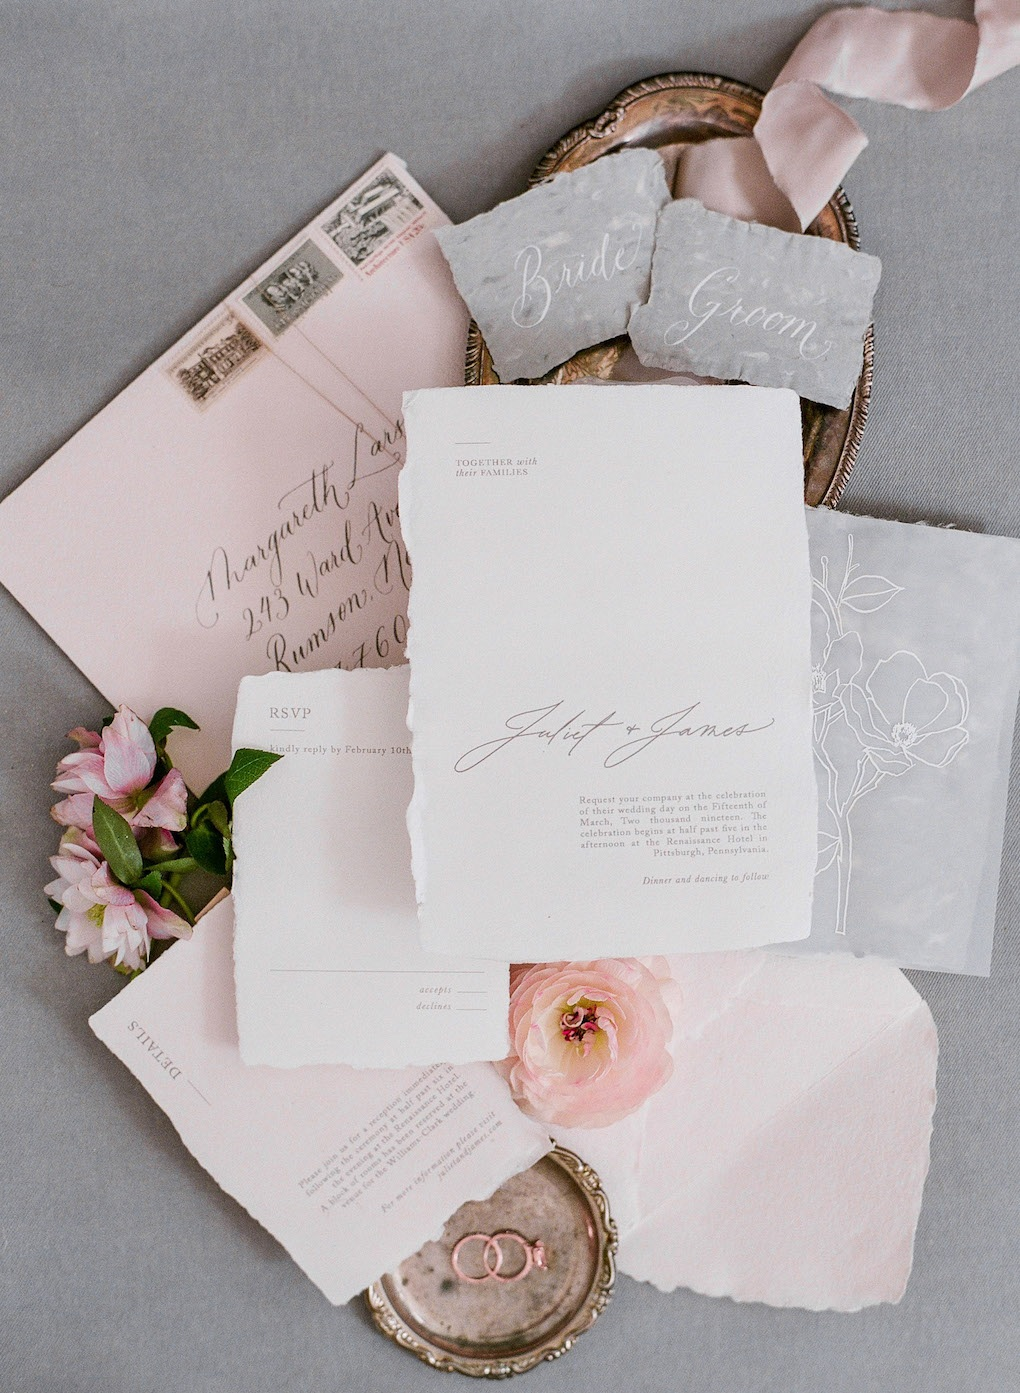 Fine Art Wedding Stationary: Soft and Subtle Palettes of Spring Blossoms | Editorial Shoot at The Renaissance Pittsburgh by Exhale Events. See more inspiration at exhale-events.com!